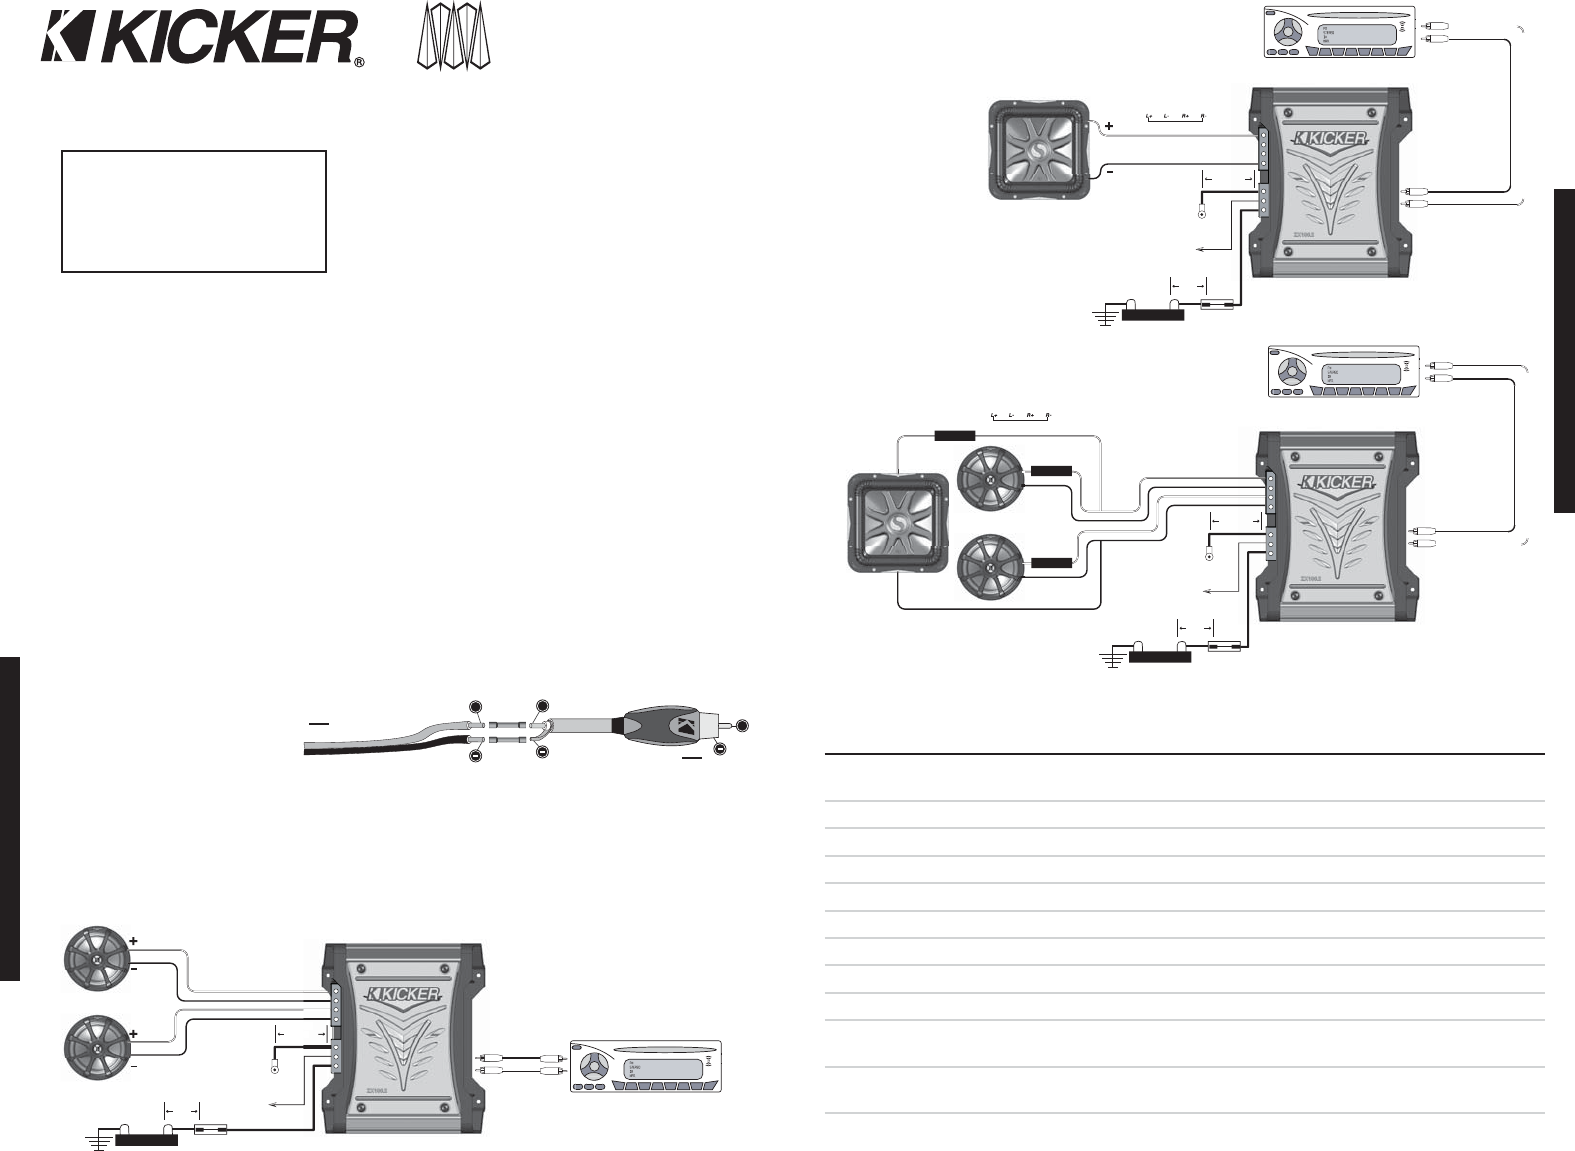 Kicker Bass Station Wiring Diagram Data Schema Pt250 Zx700 5 29 Images L7